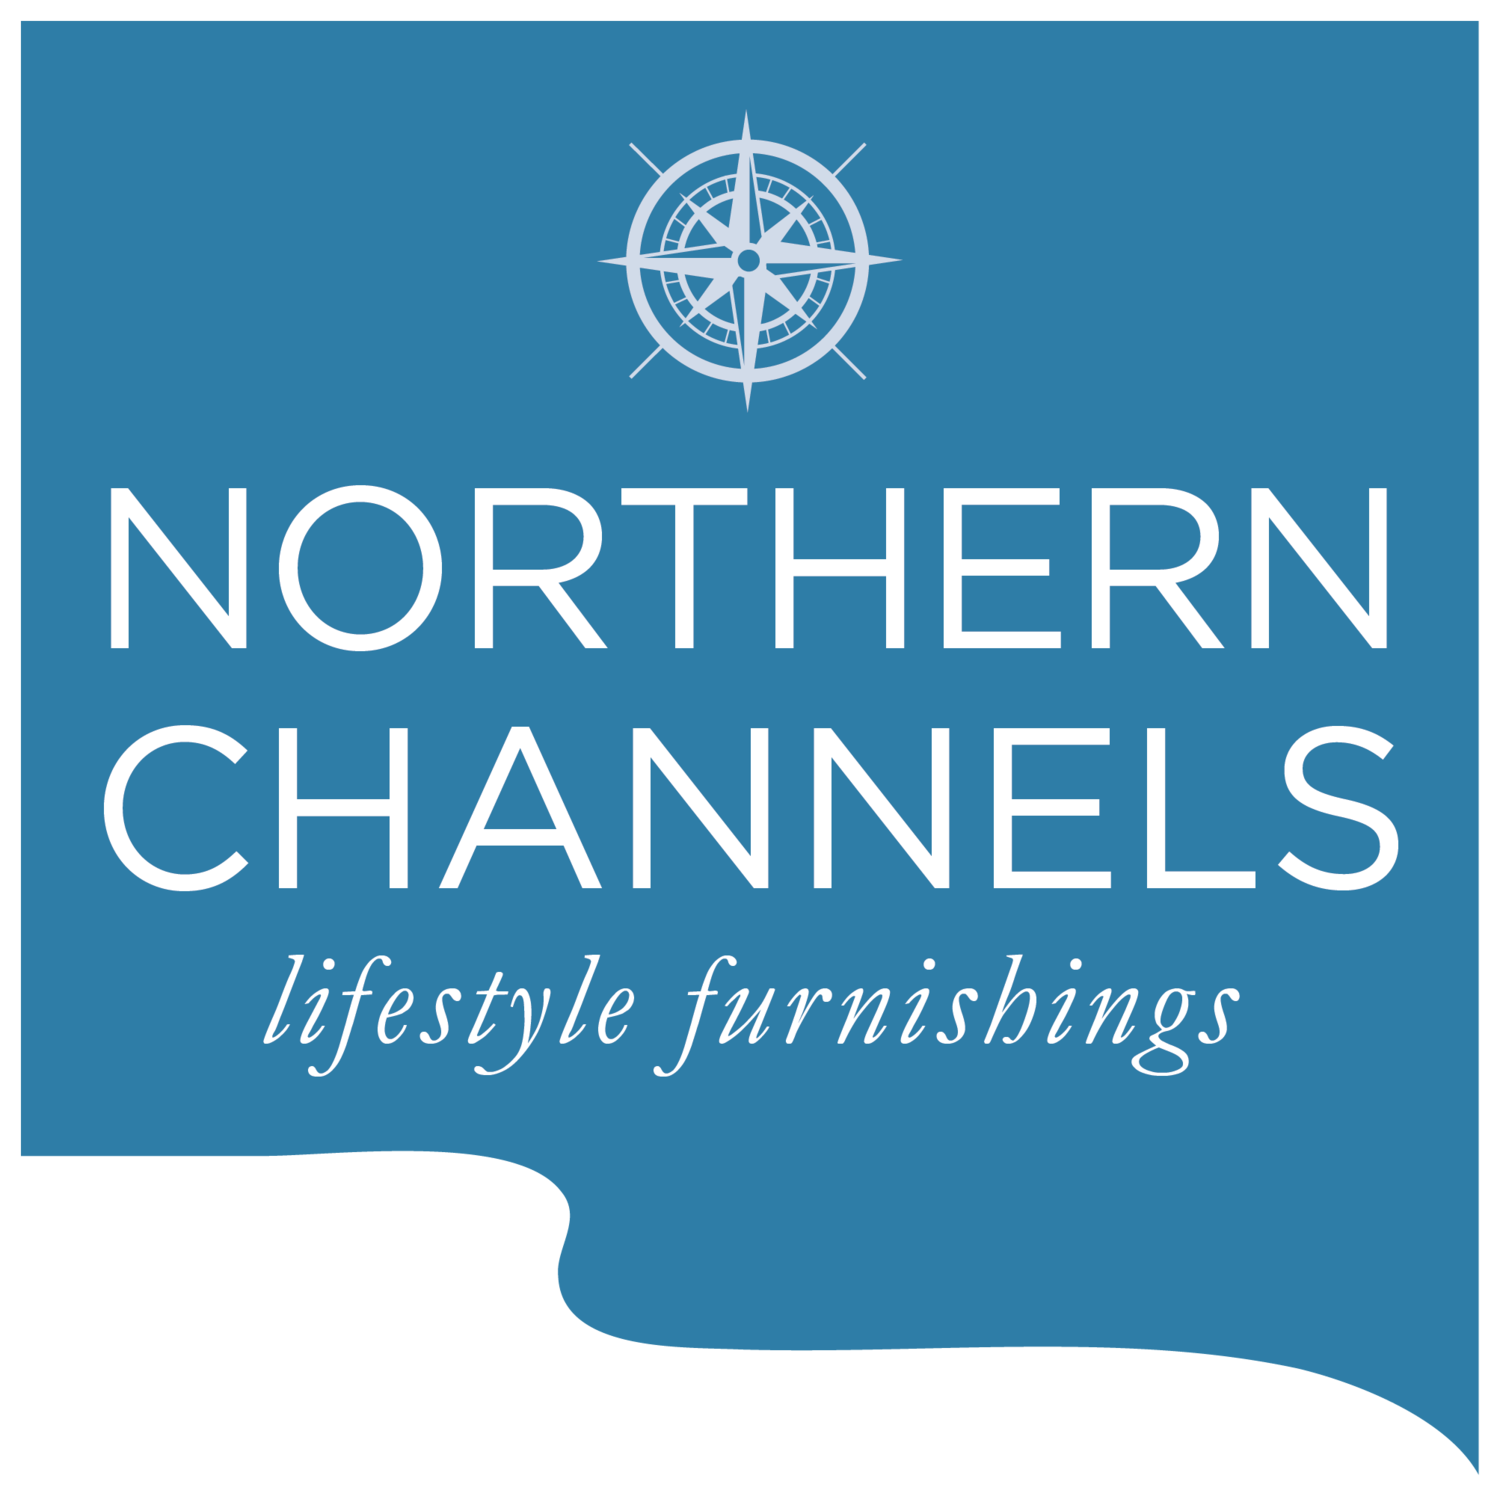 Northern Channels